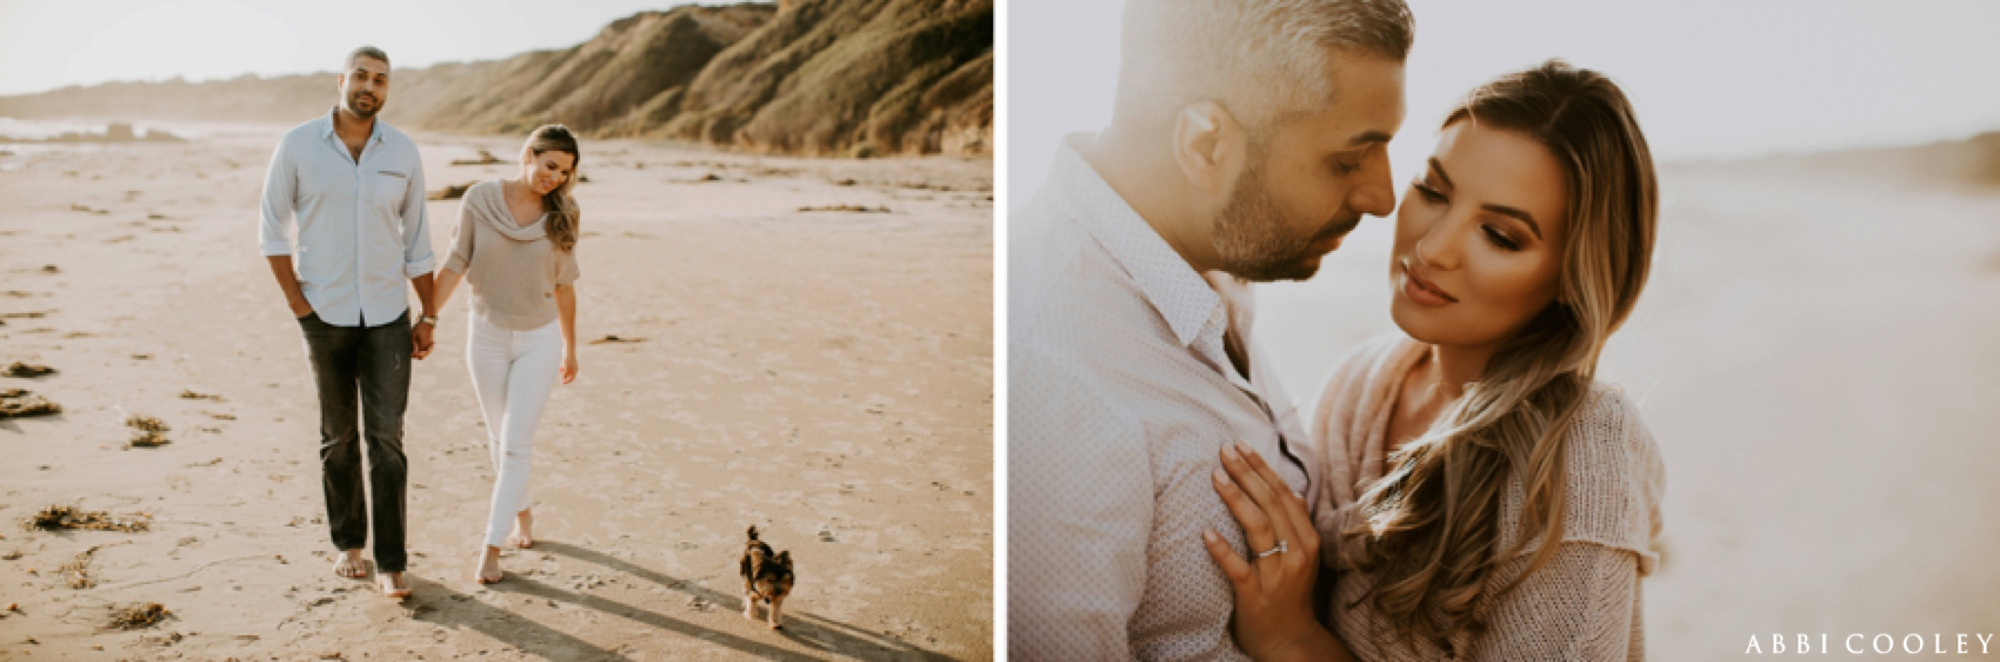 ABBI COOLEY NEWPORT BEACH ENGAGEMENT_1010